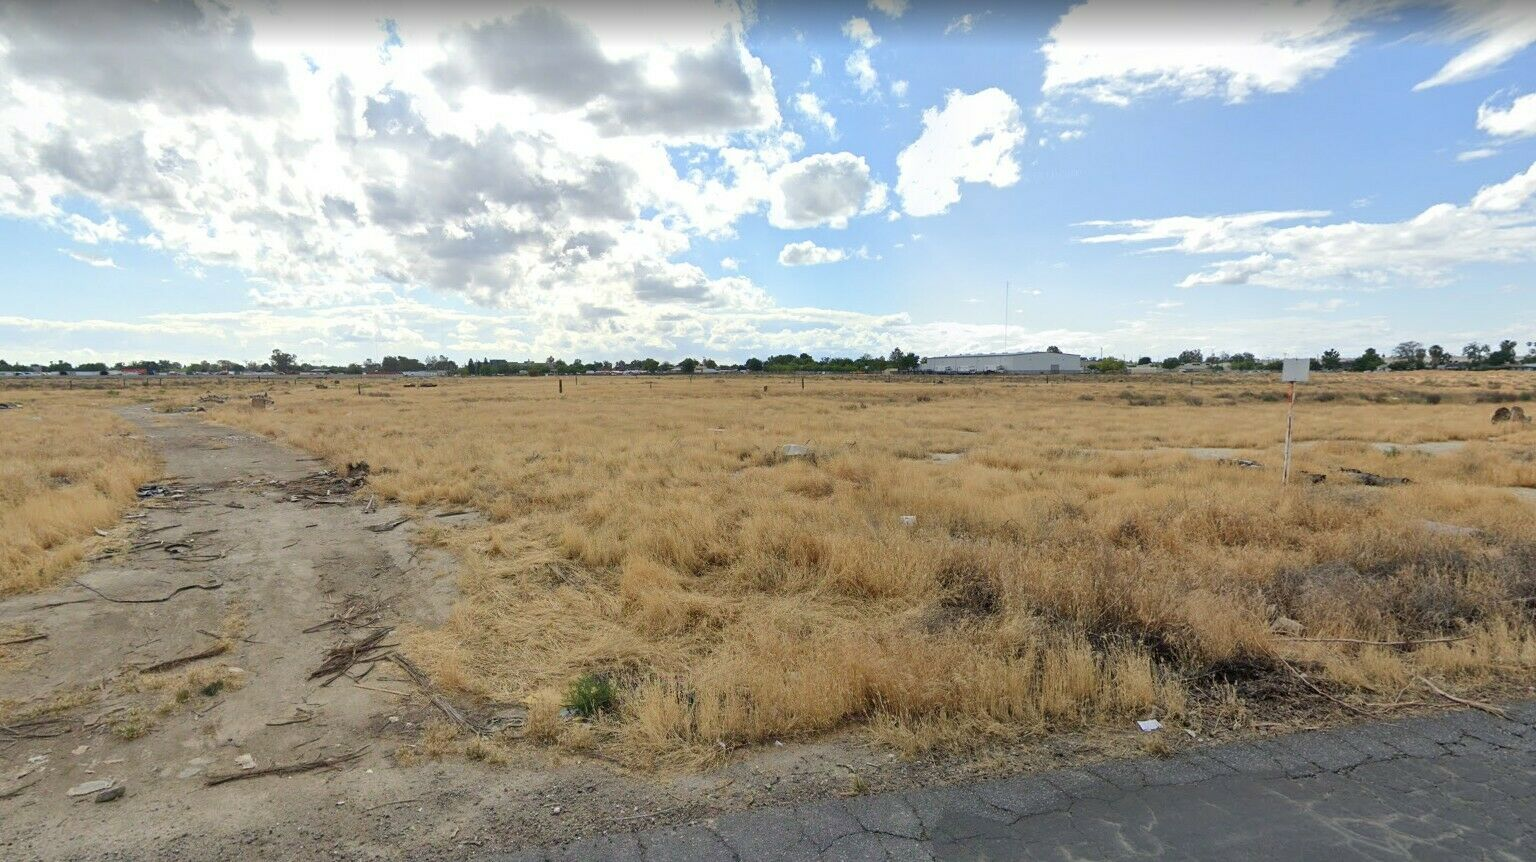 1/2 Acre Residential City Lot: Bakersfield California *113 Miles to Los Angeles*